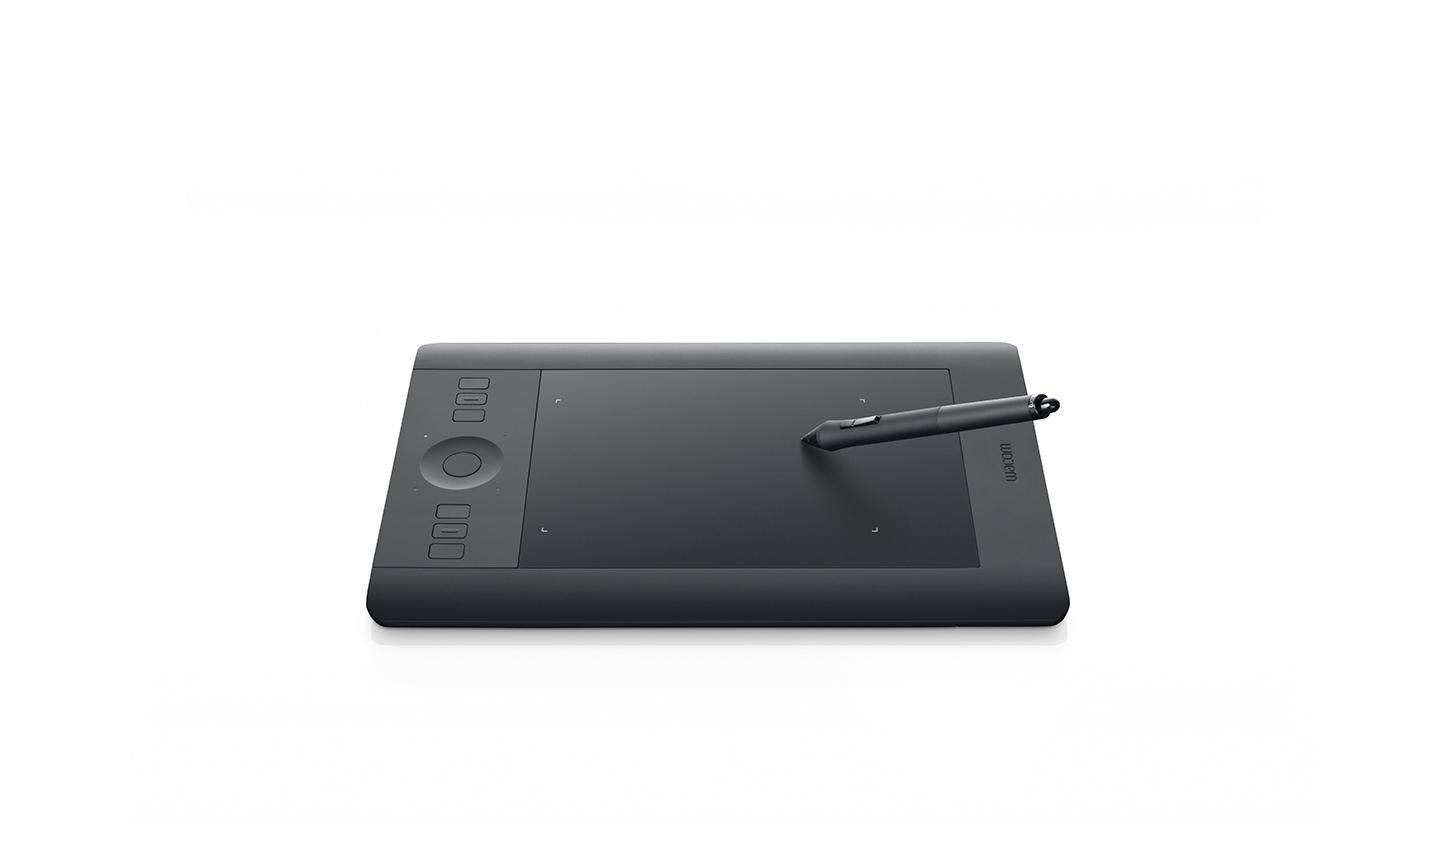 Intuos Pro S